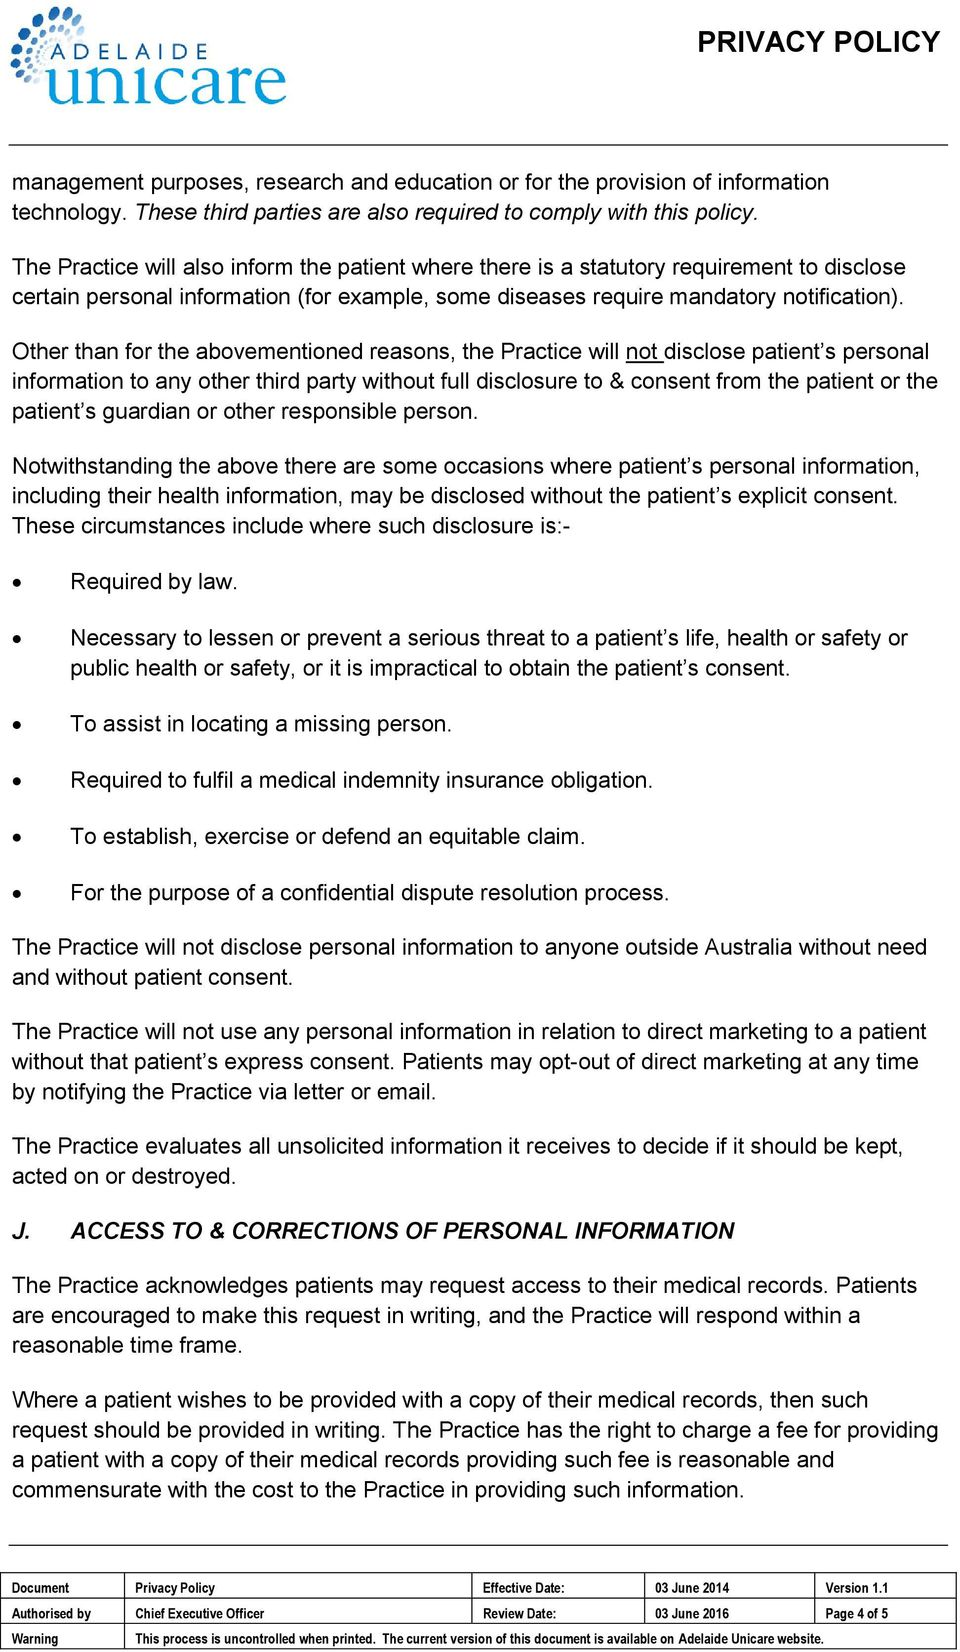 Other than for the abovementioned reasons, the Practice will not disclose patient s personal information to any other third party without full disclosure to & consent from the patient or the patient